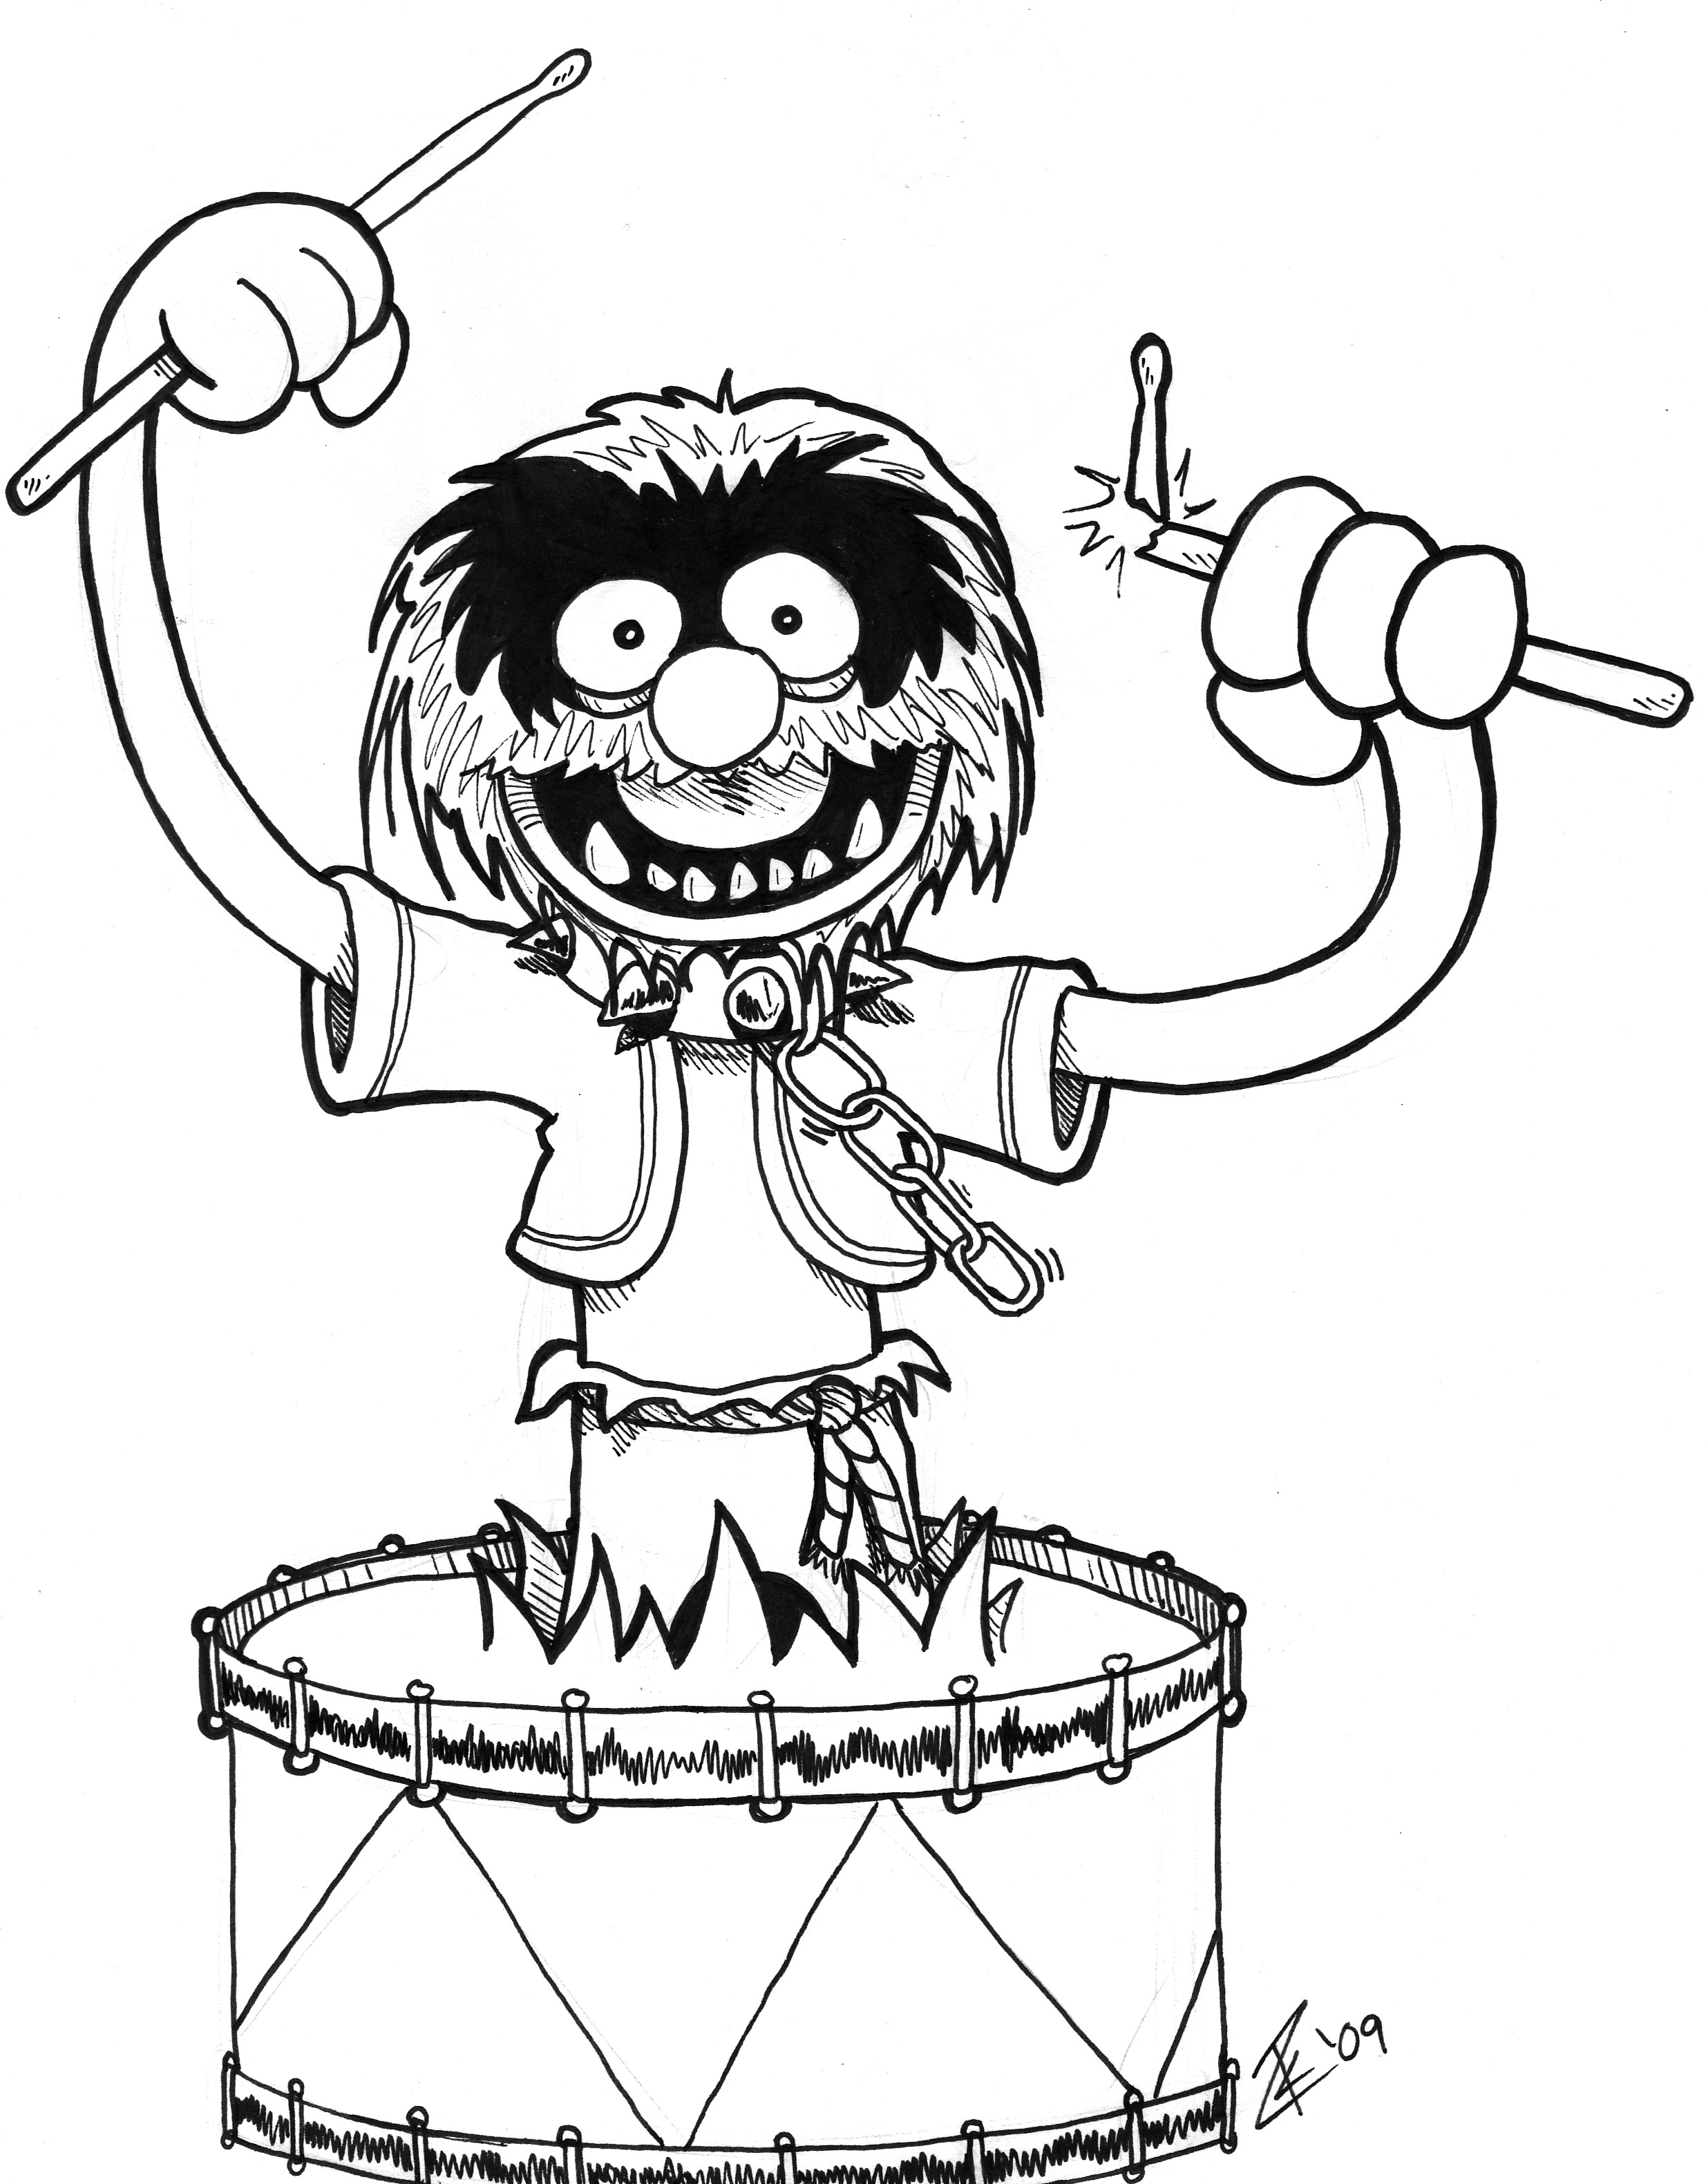 2469x3161 Drum Drawings Animal From The Muppets. Drawn During Heroes Con